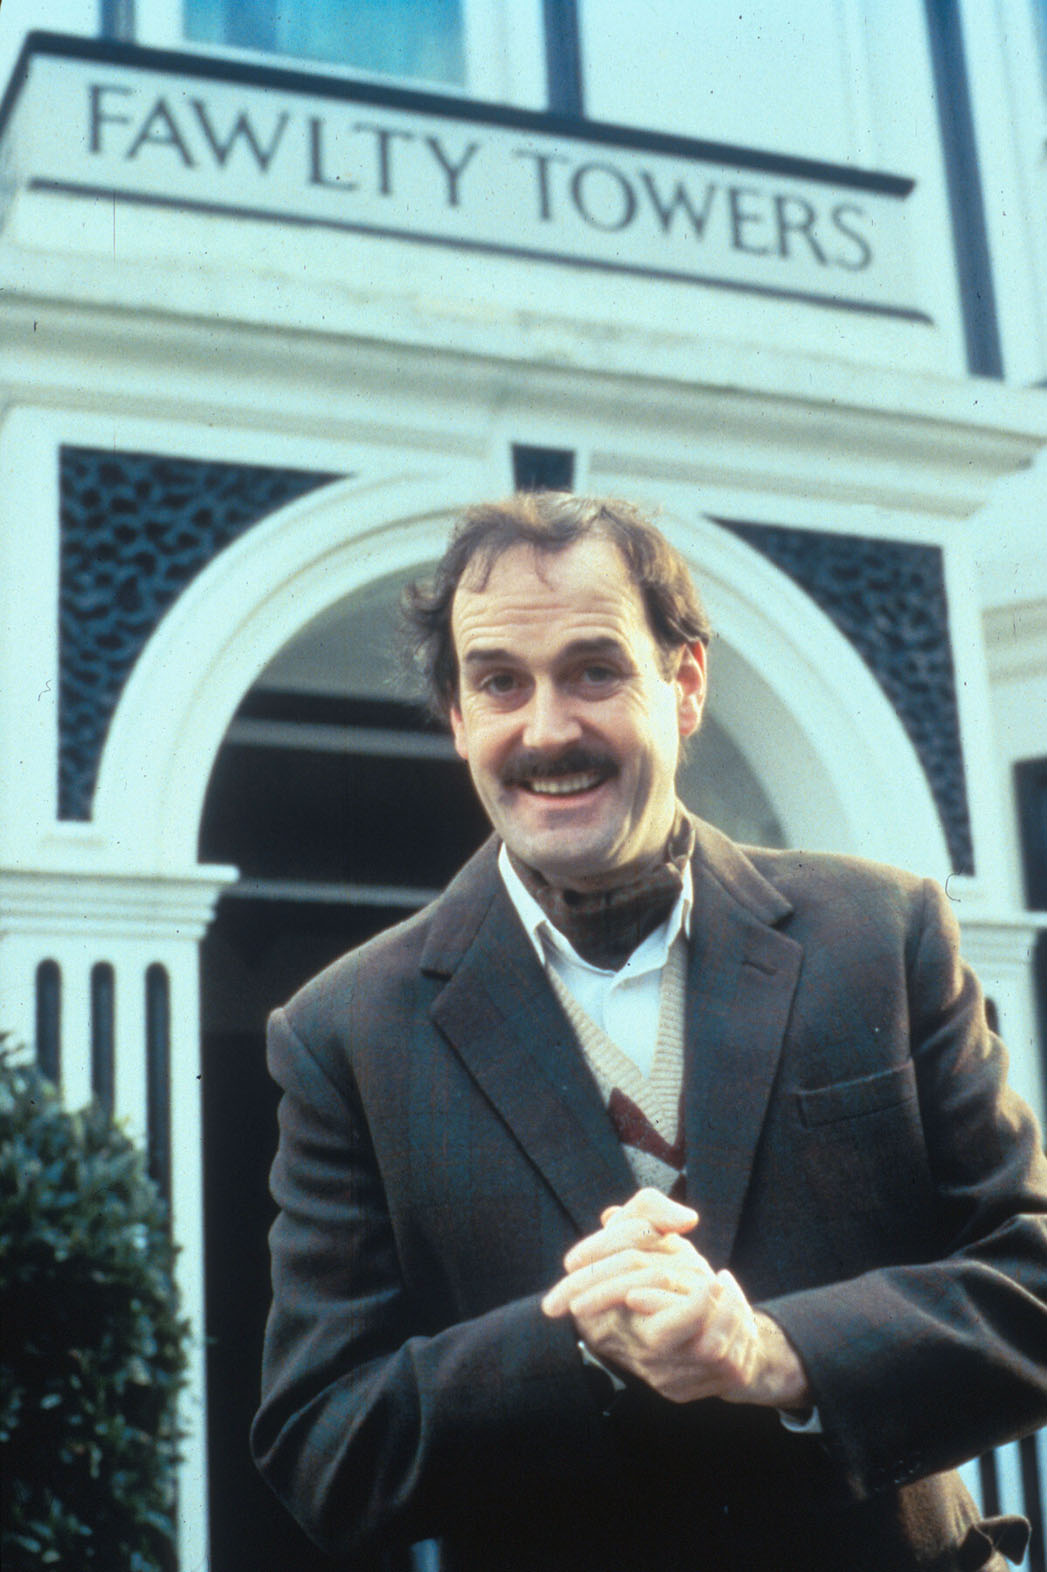 Fawlty Towers Still - P 2015